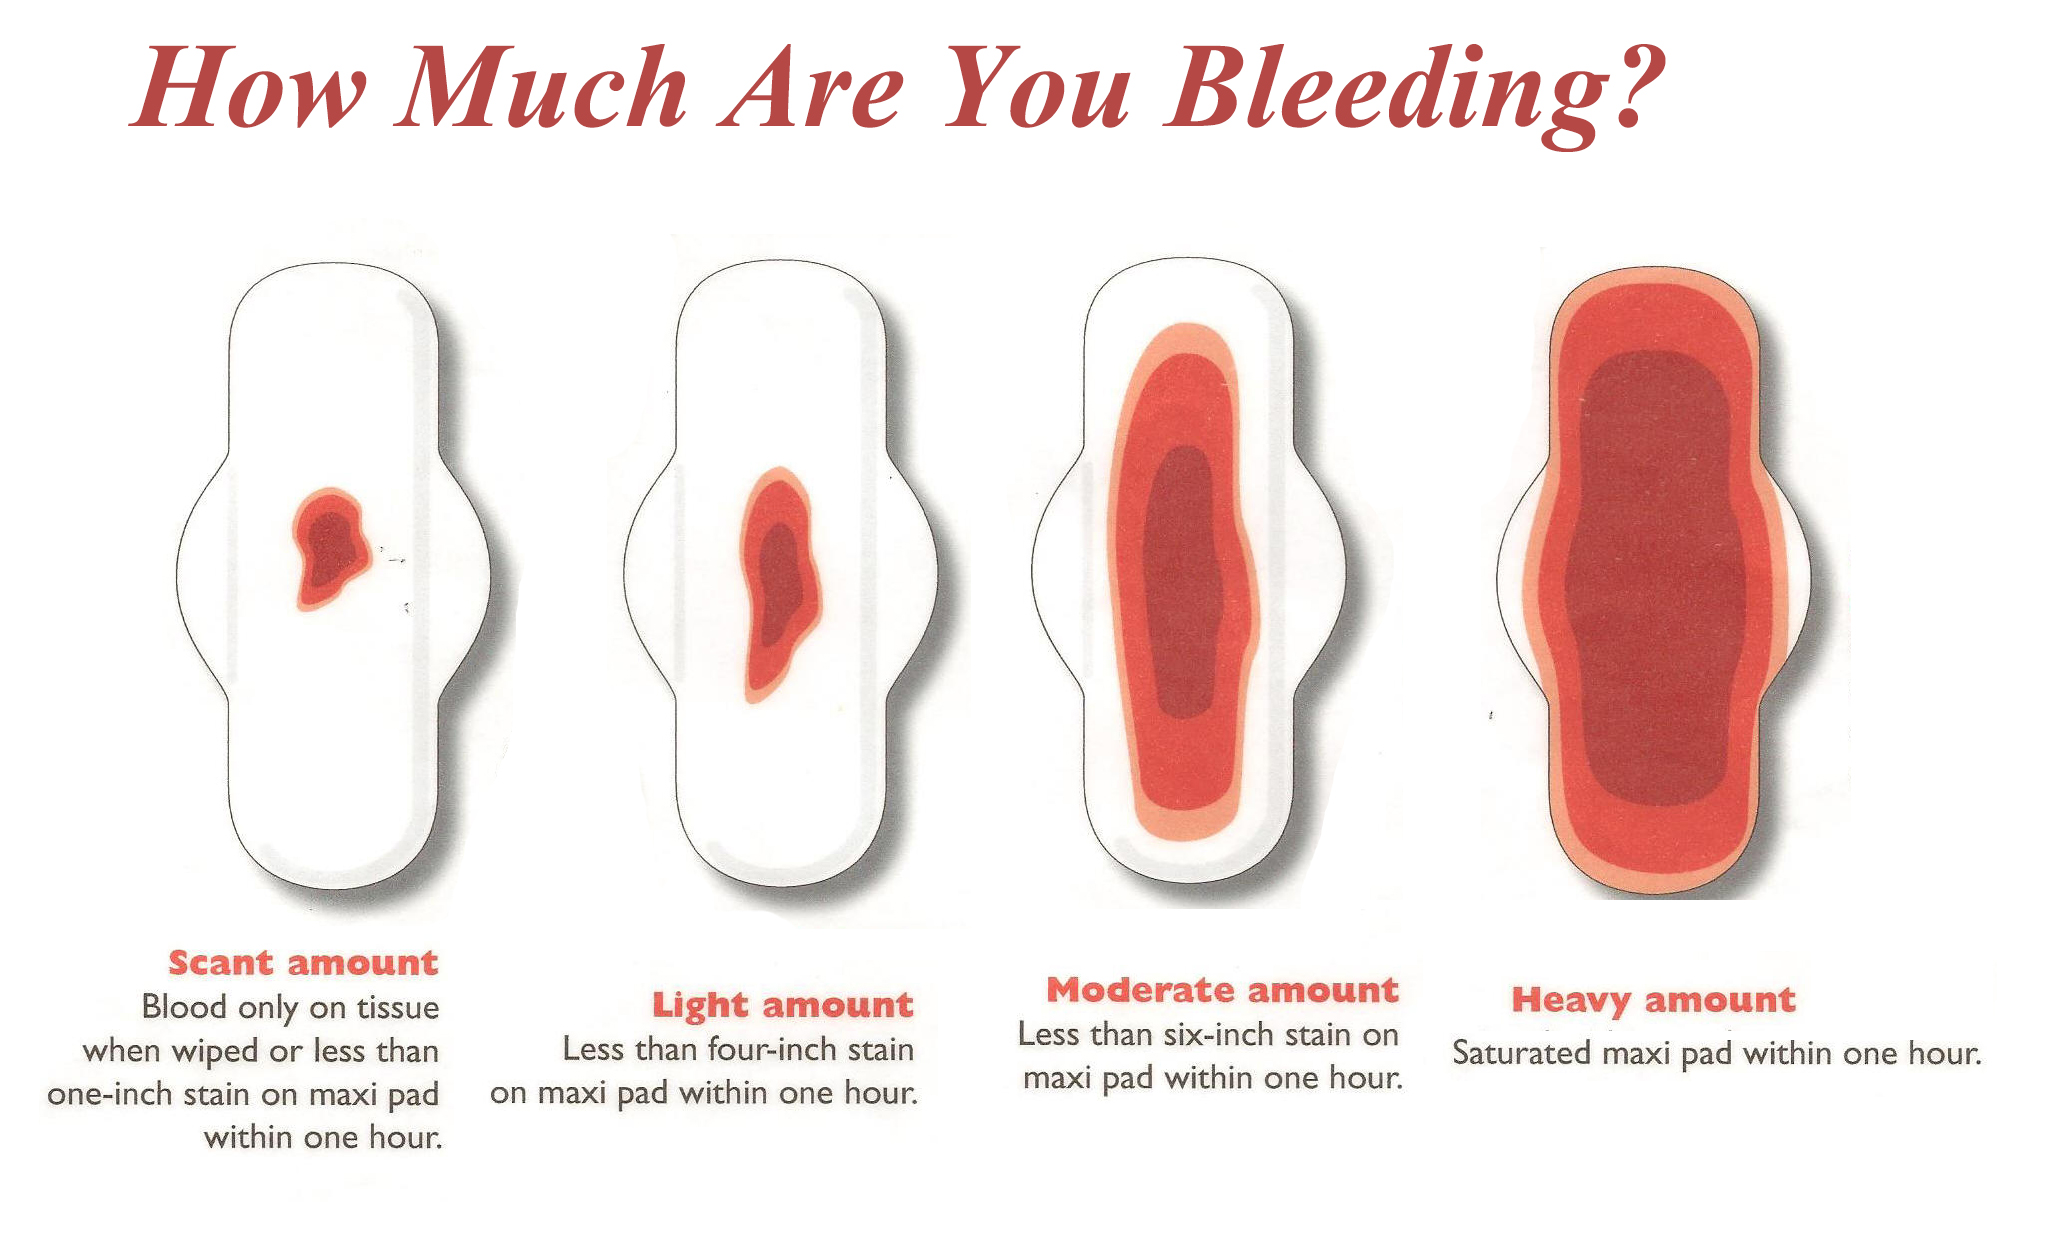 Bleeding after sex normal